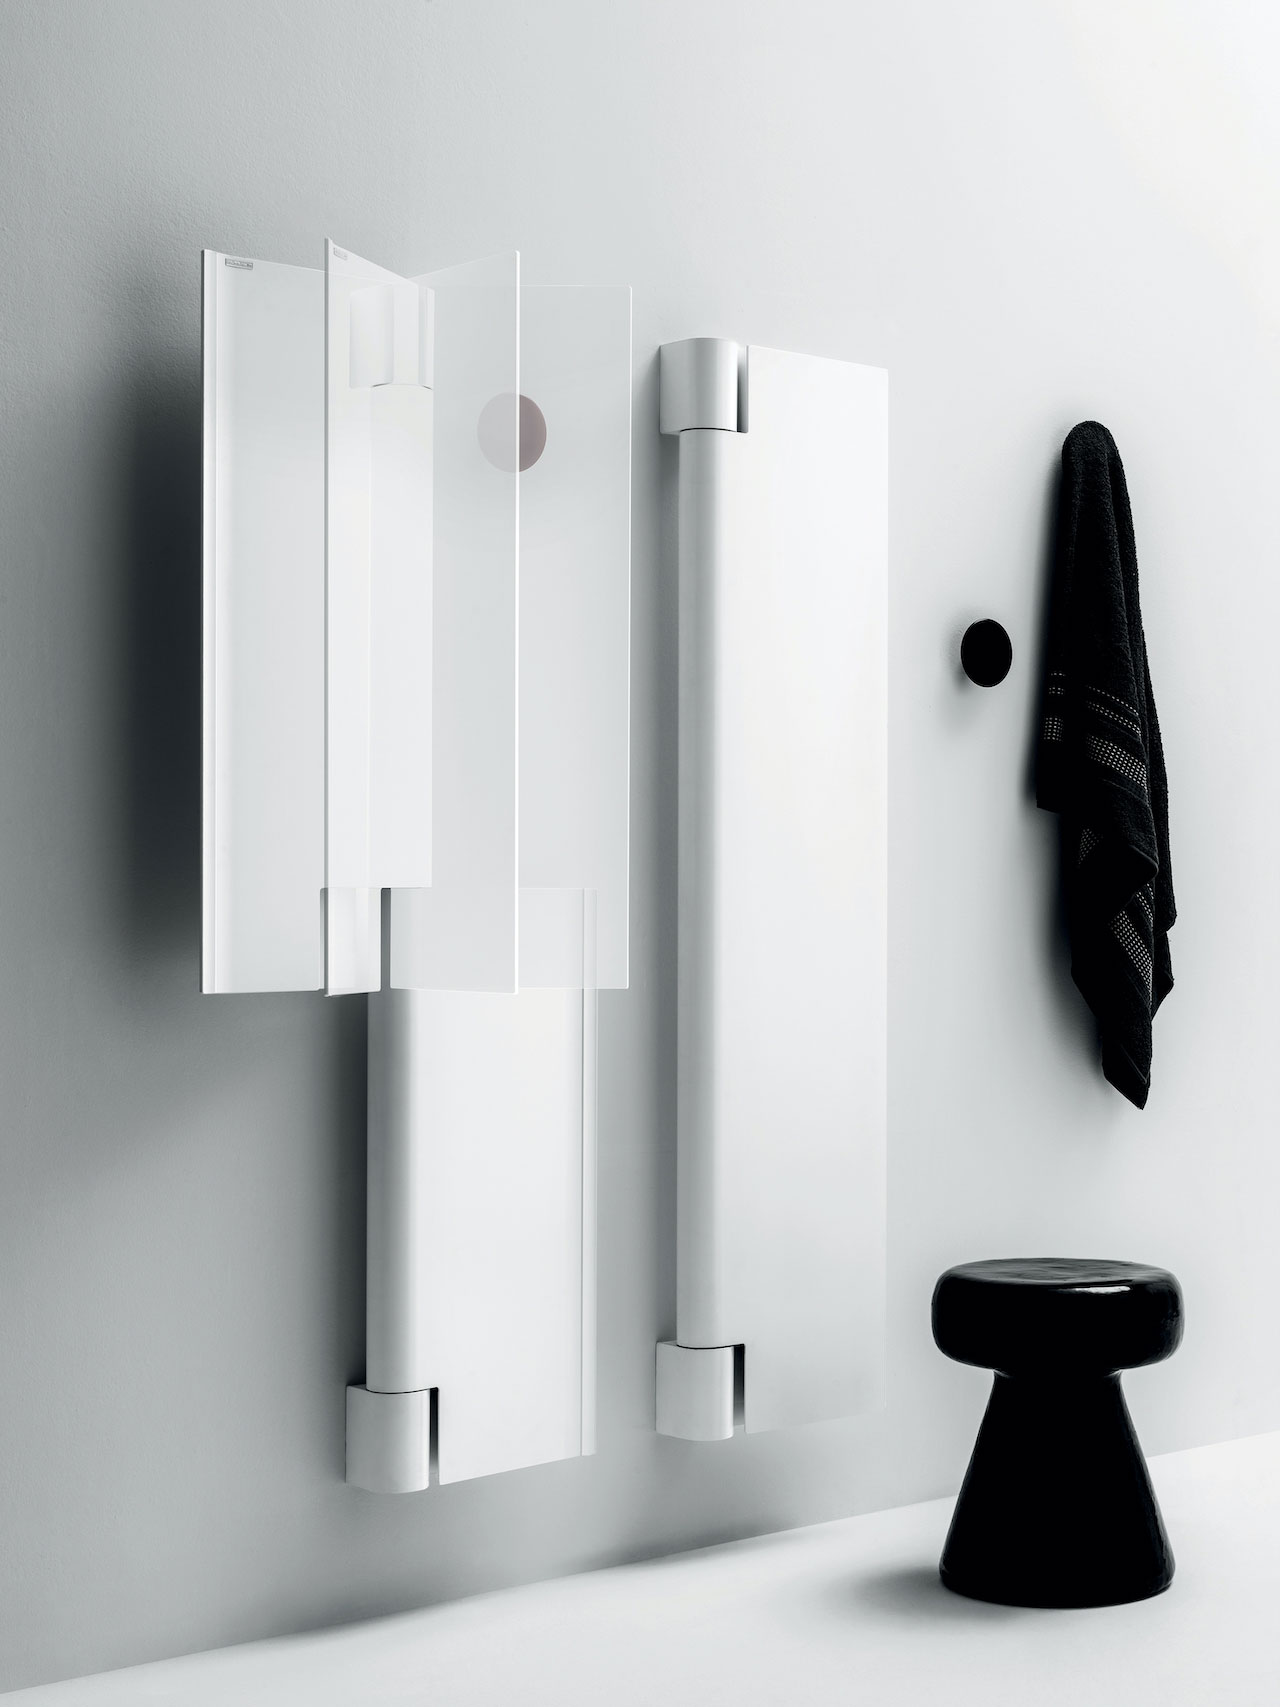 Radiator Byobu, design Marc Sadler 2018, Antrax IT